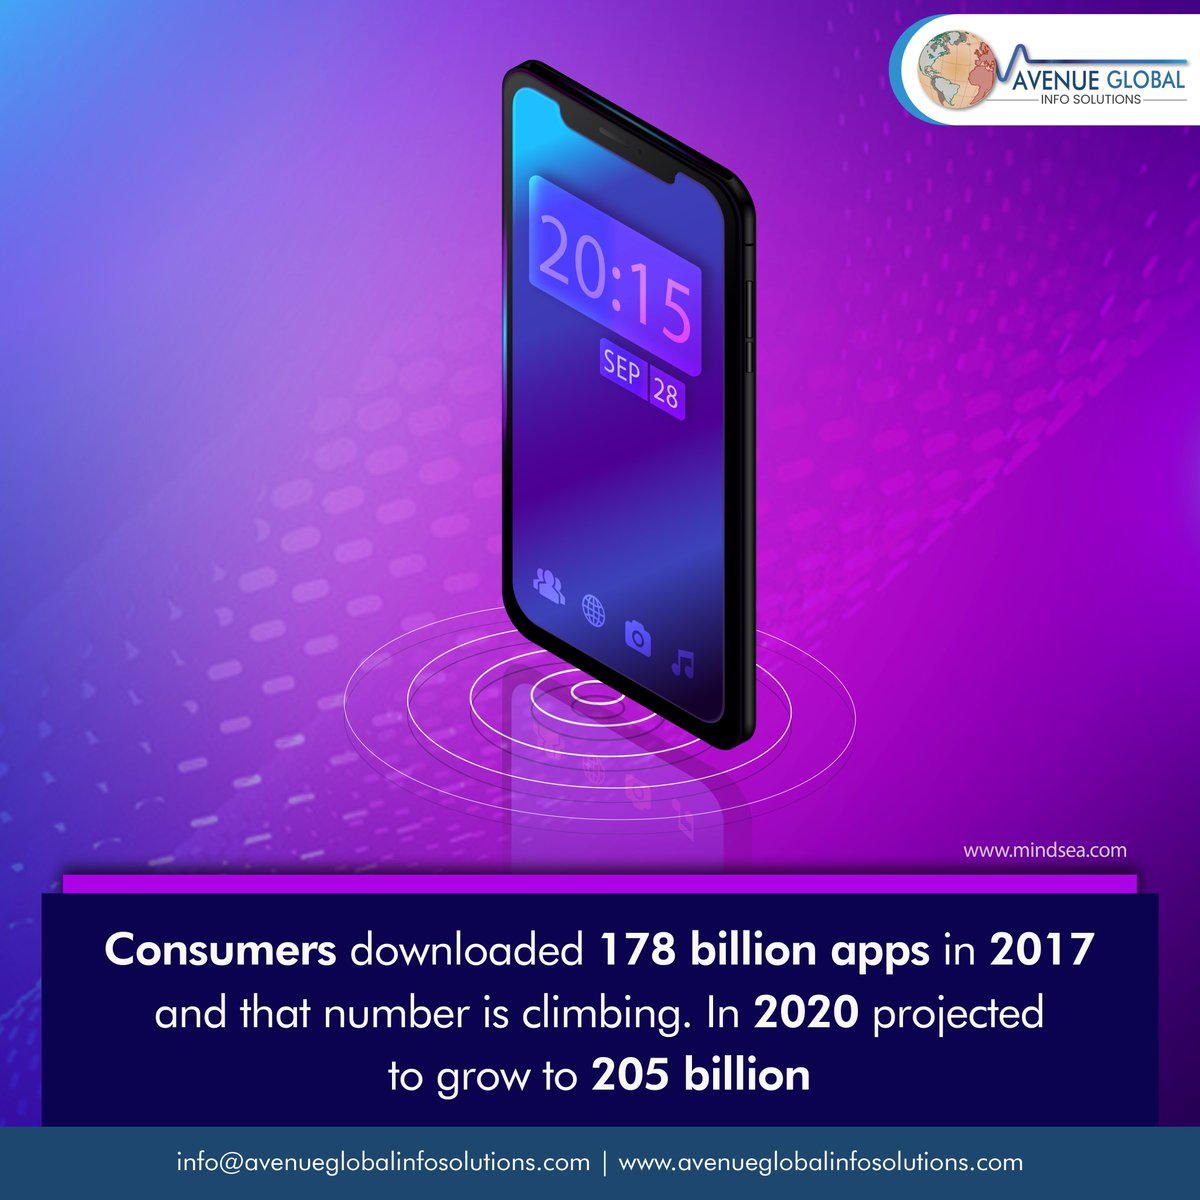 Application Development 2020-   #appdevelopment #ios #android #CyberSecurity #MobileApp #apps#MobileApplicationDevelopment #ITcompany #Avenueglobalinfosolutions #avenueglobal #AGIS https://t.co/KyhQwc7qvz